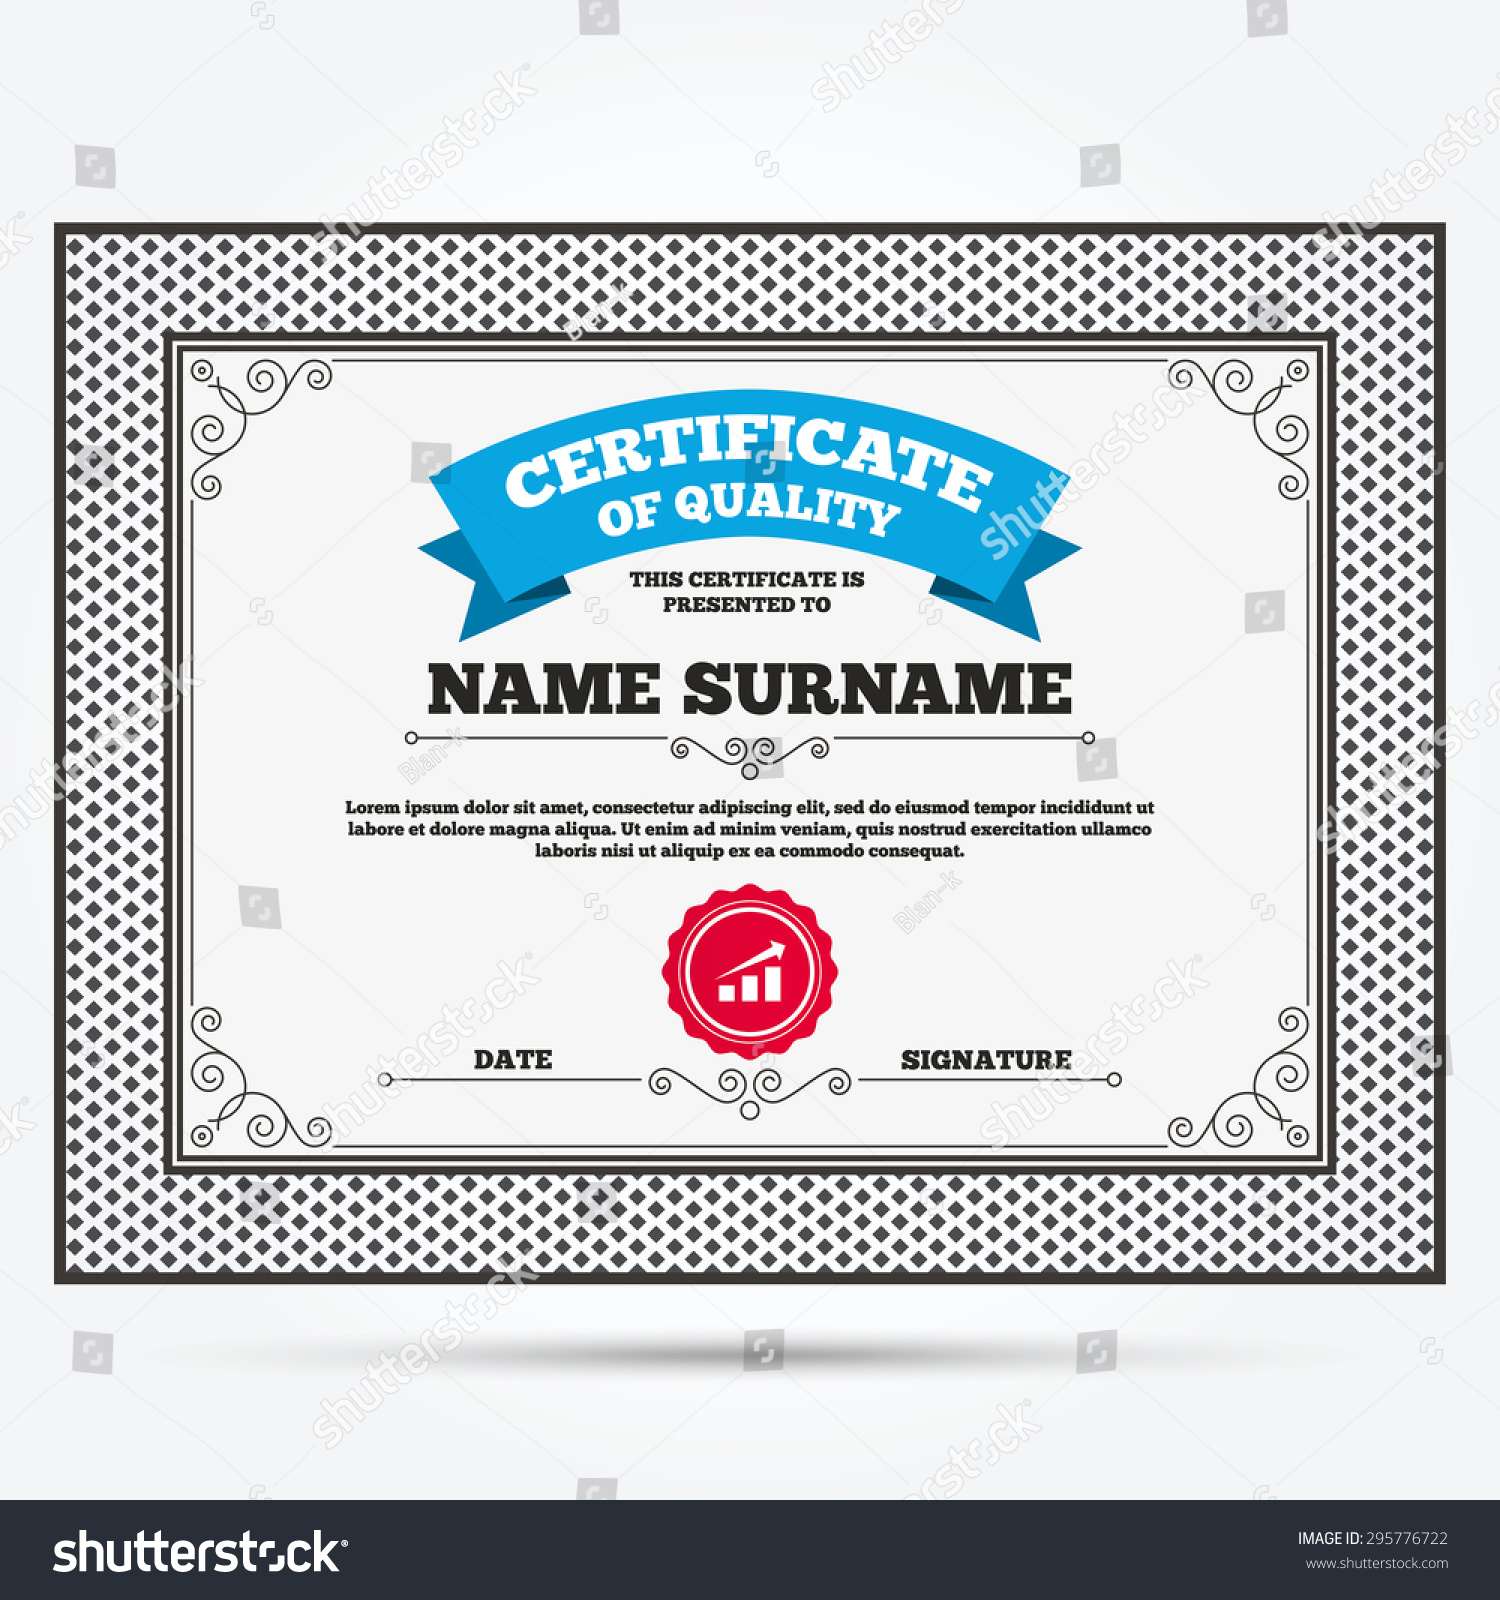 Best certificate of quality template images example resume certificate quality chart arrow sign icon stock vector 295776722 yelopaper Images